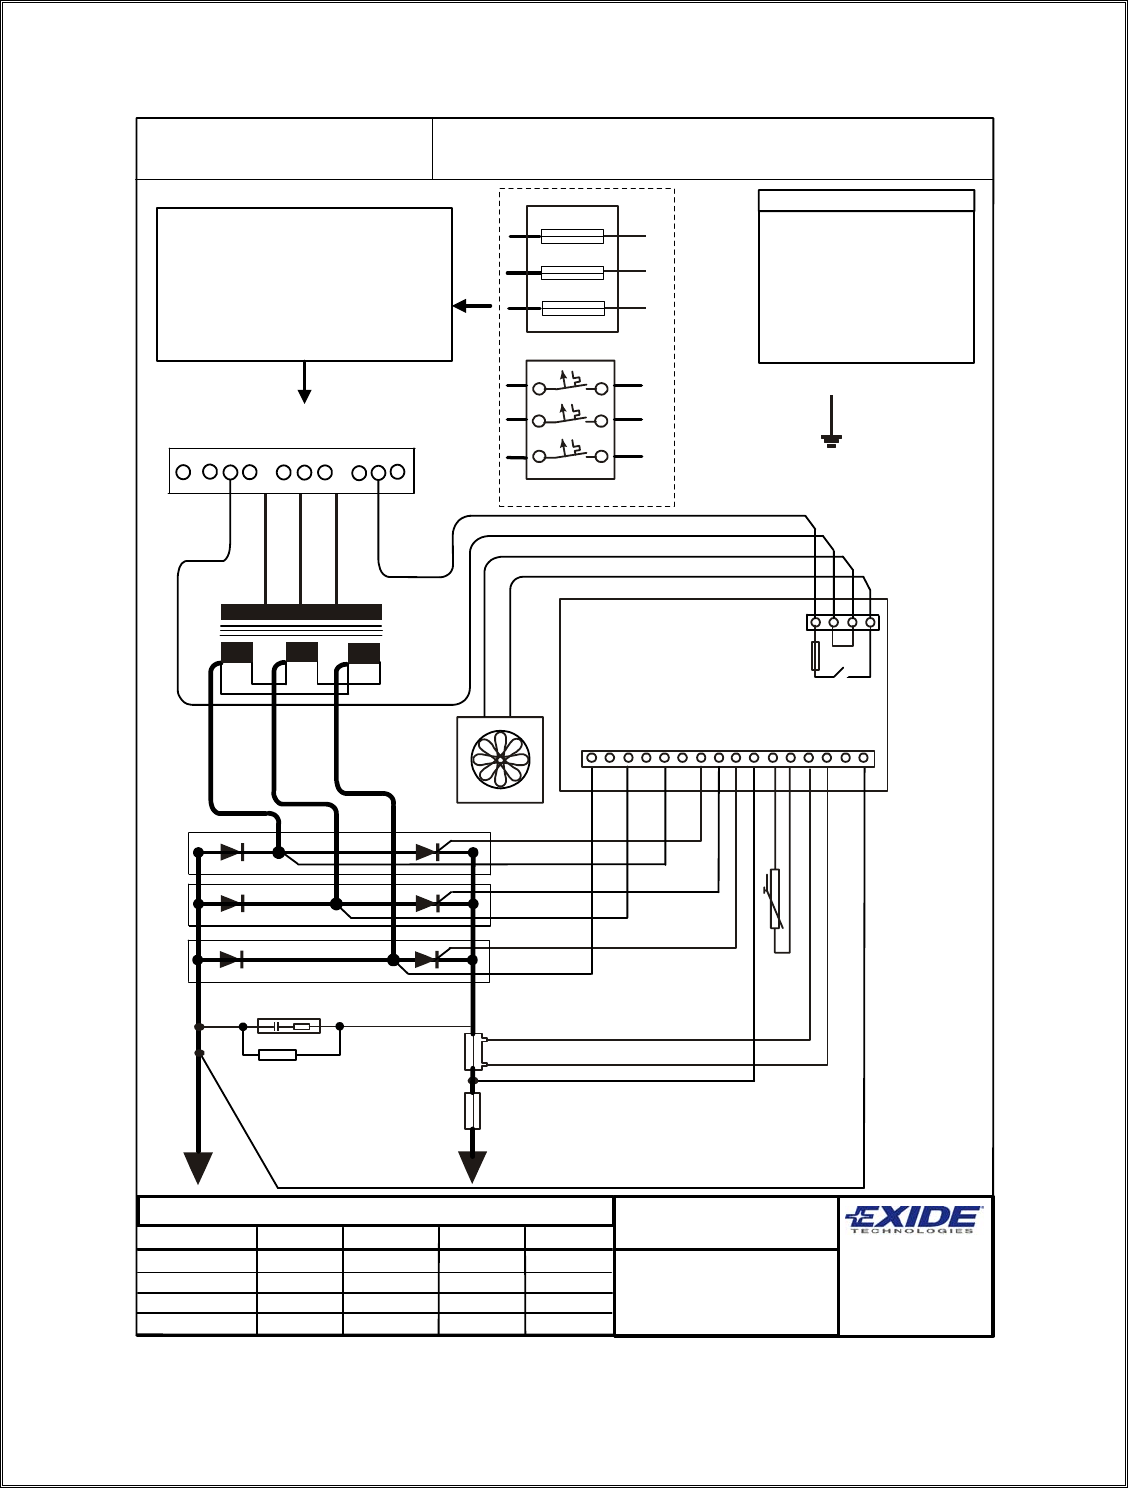 Page 17 of Exide Automobile Battery Charger DEC200 User